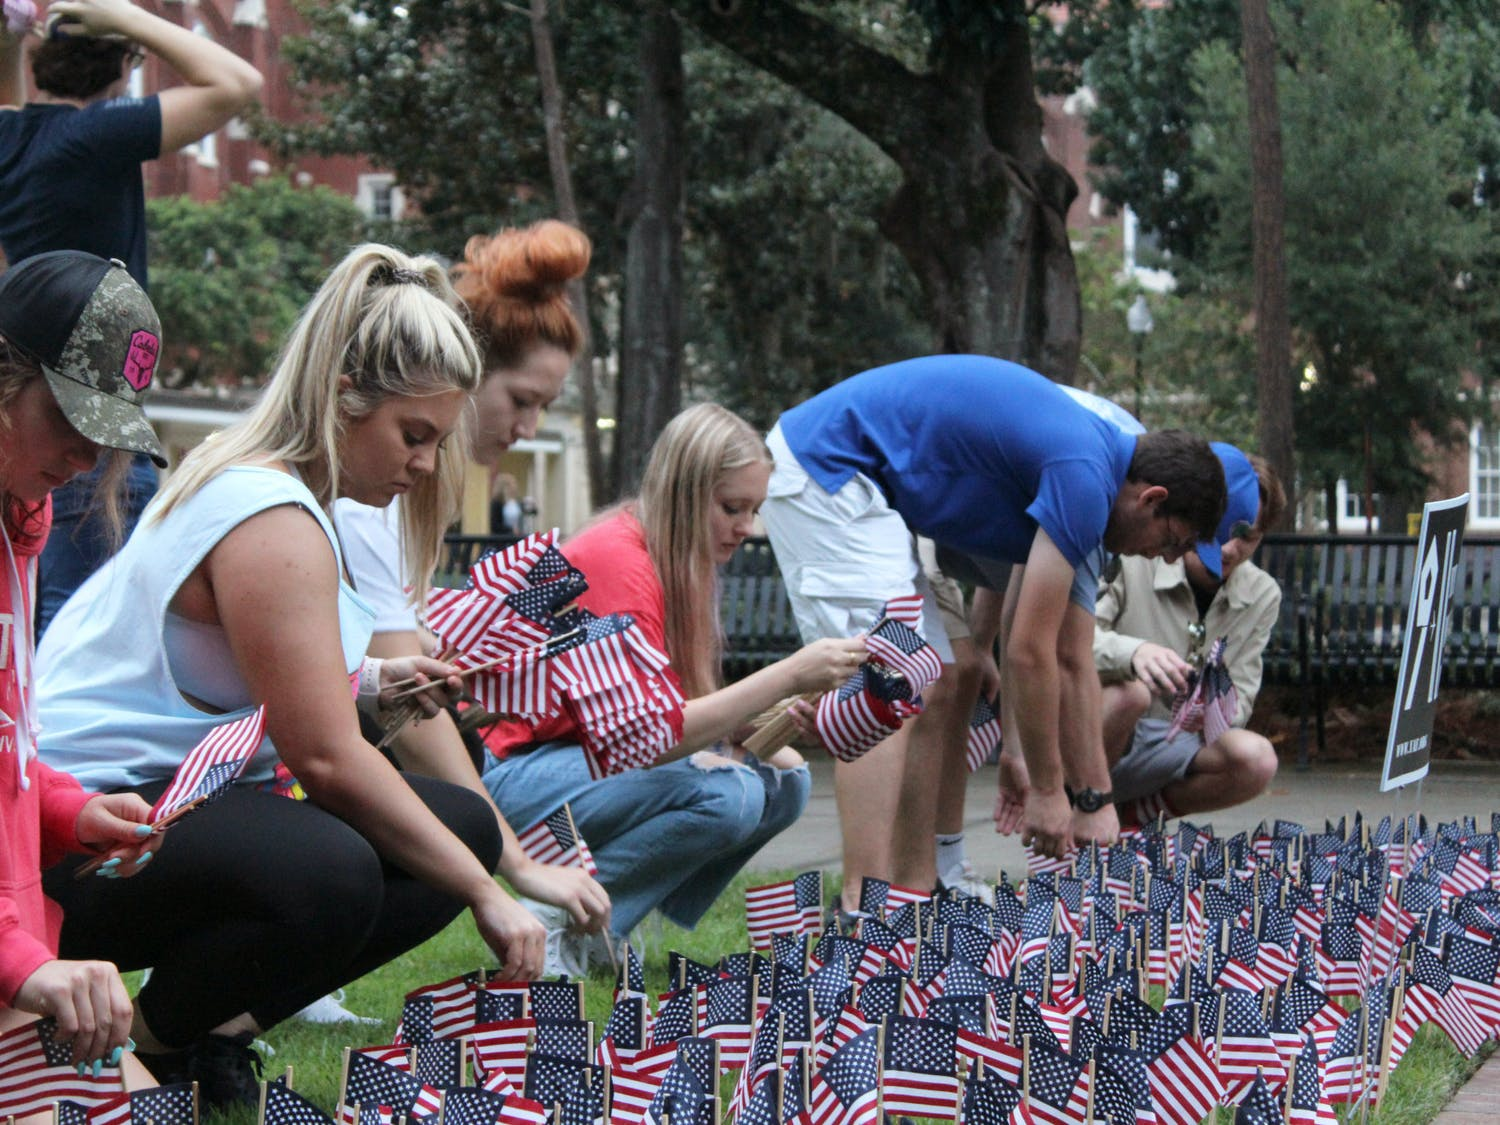 On Saturday, Sept. 11, 2021, city residents and university members across Gainesville commemorated what happened on 9/11, 20 years ago. UF Young Americans for Freedom planted 2,977 flags in the ground to represent the lives lost. About 50 people gathered at Reserve Park to share stories about how 9/11 impacted them. Collegiate Veterans Society members, firefighters and friends met at Ben Hill Griffin Stadium to climb the steps to honor those who climbed the tower stairs and saved thousands of lives.